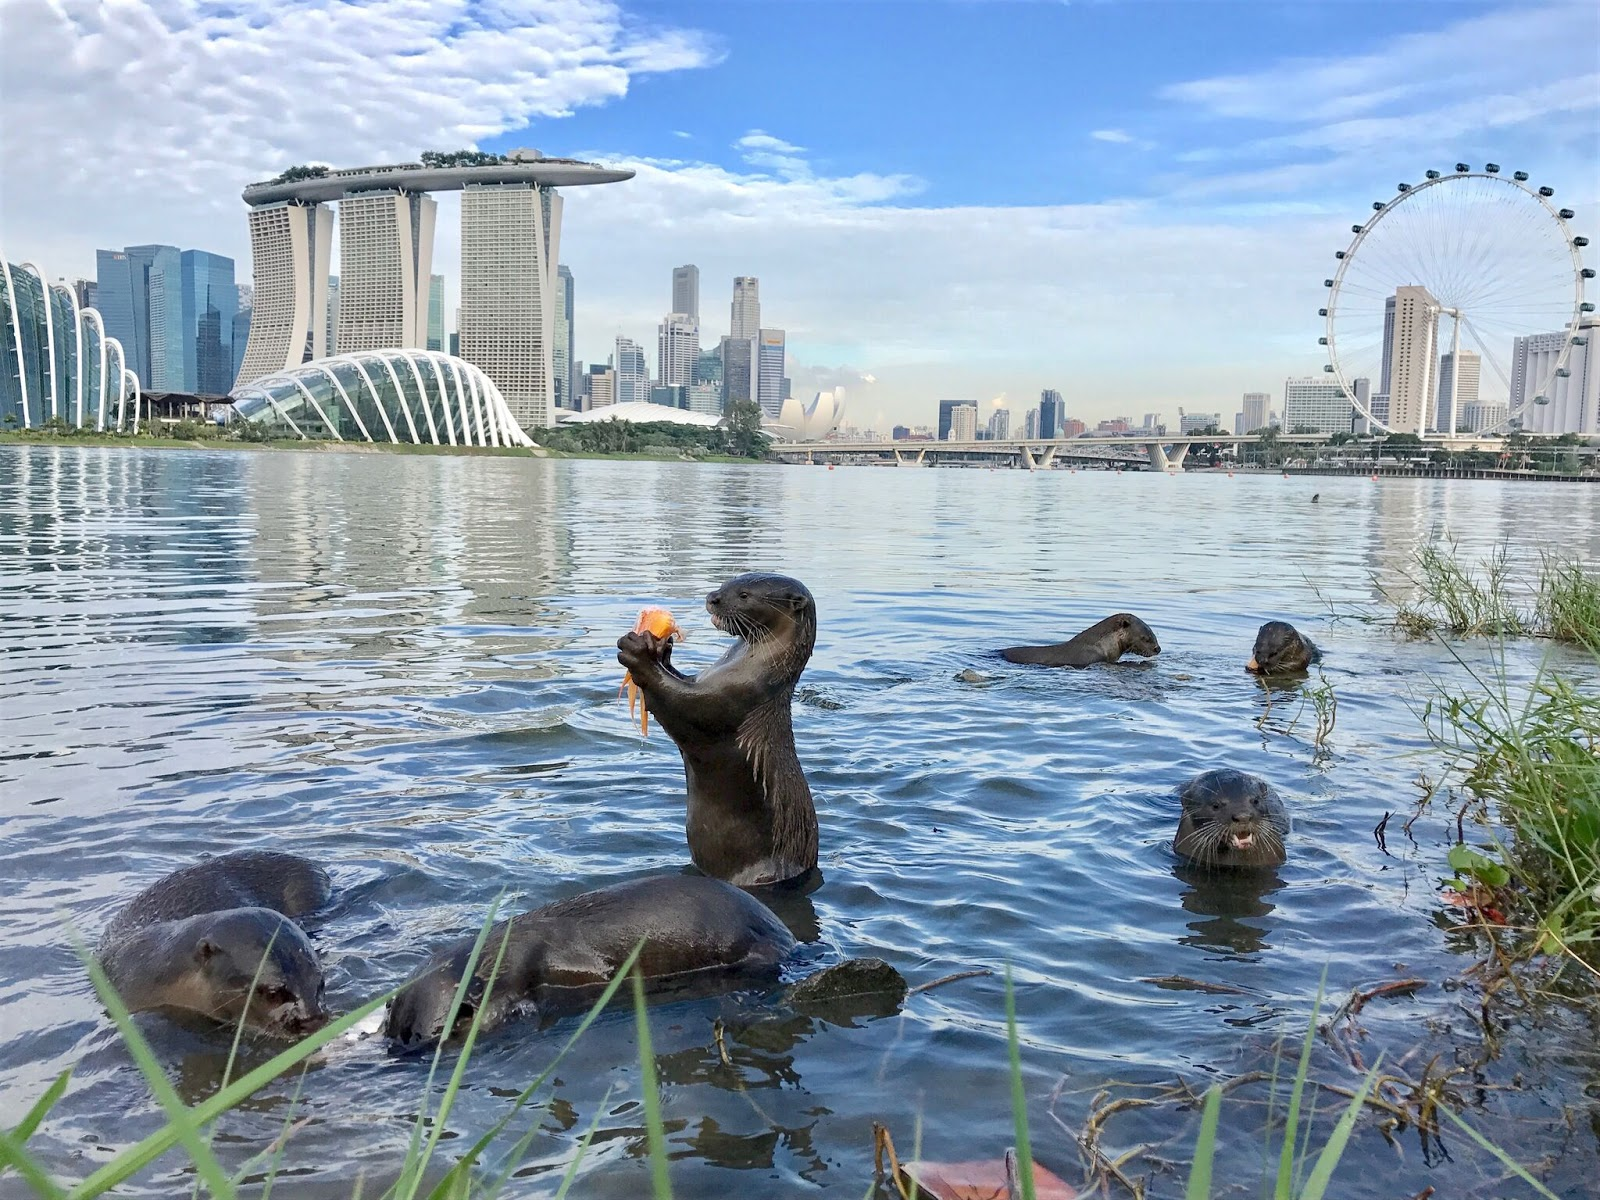 Ms Emily Khor, 33, an administrative staff member, felt it would be a nice change to see the otters representing Singapore.